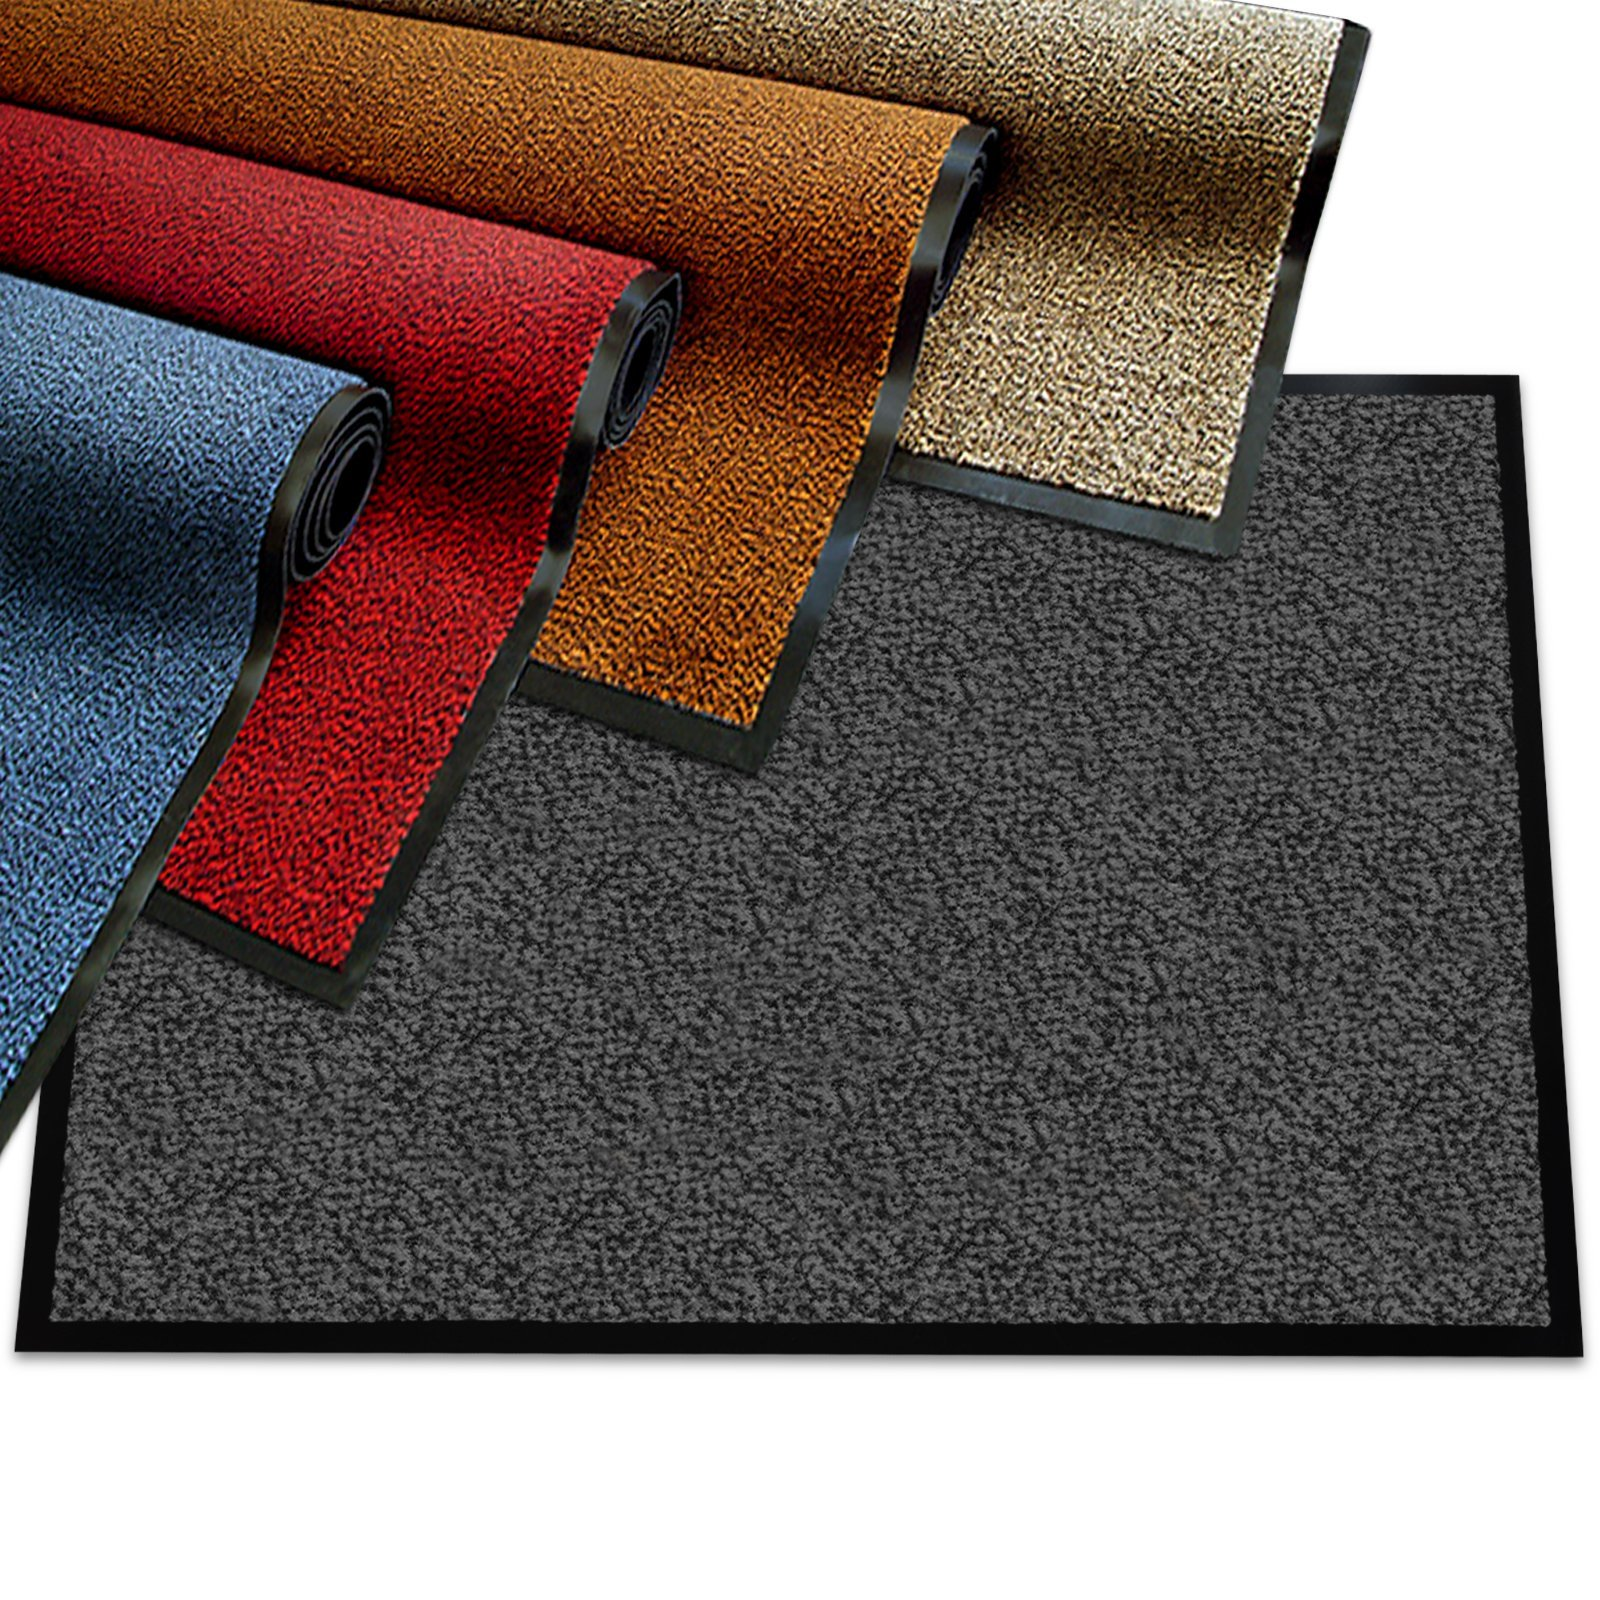 your commercial the matman mats specialist industrial mat grade man floor